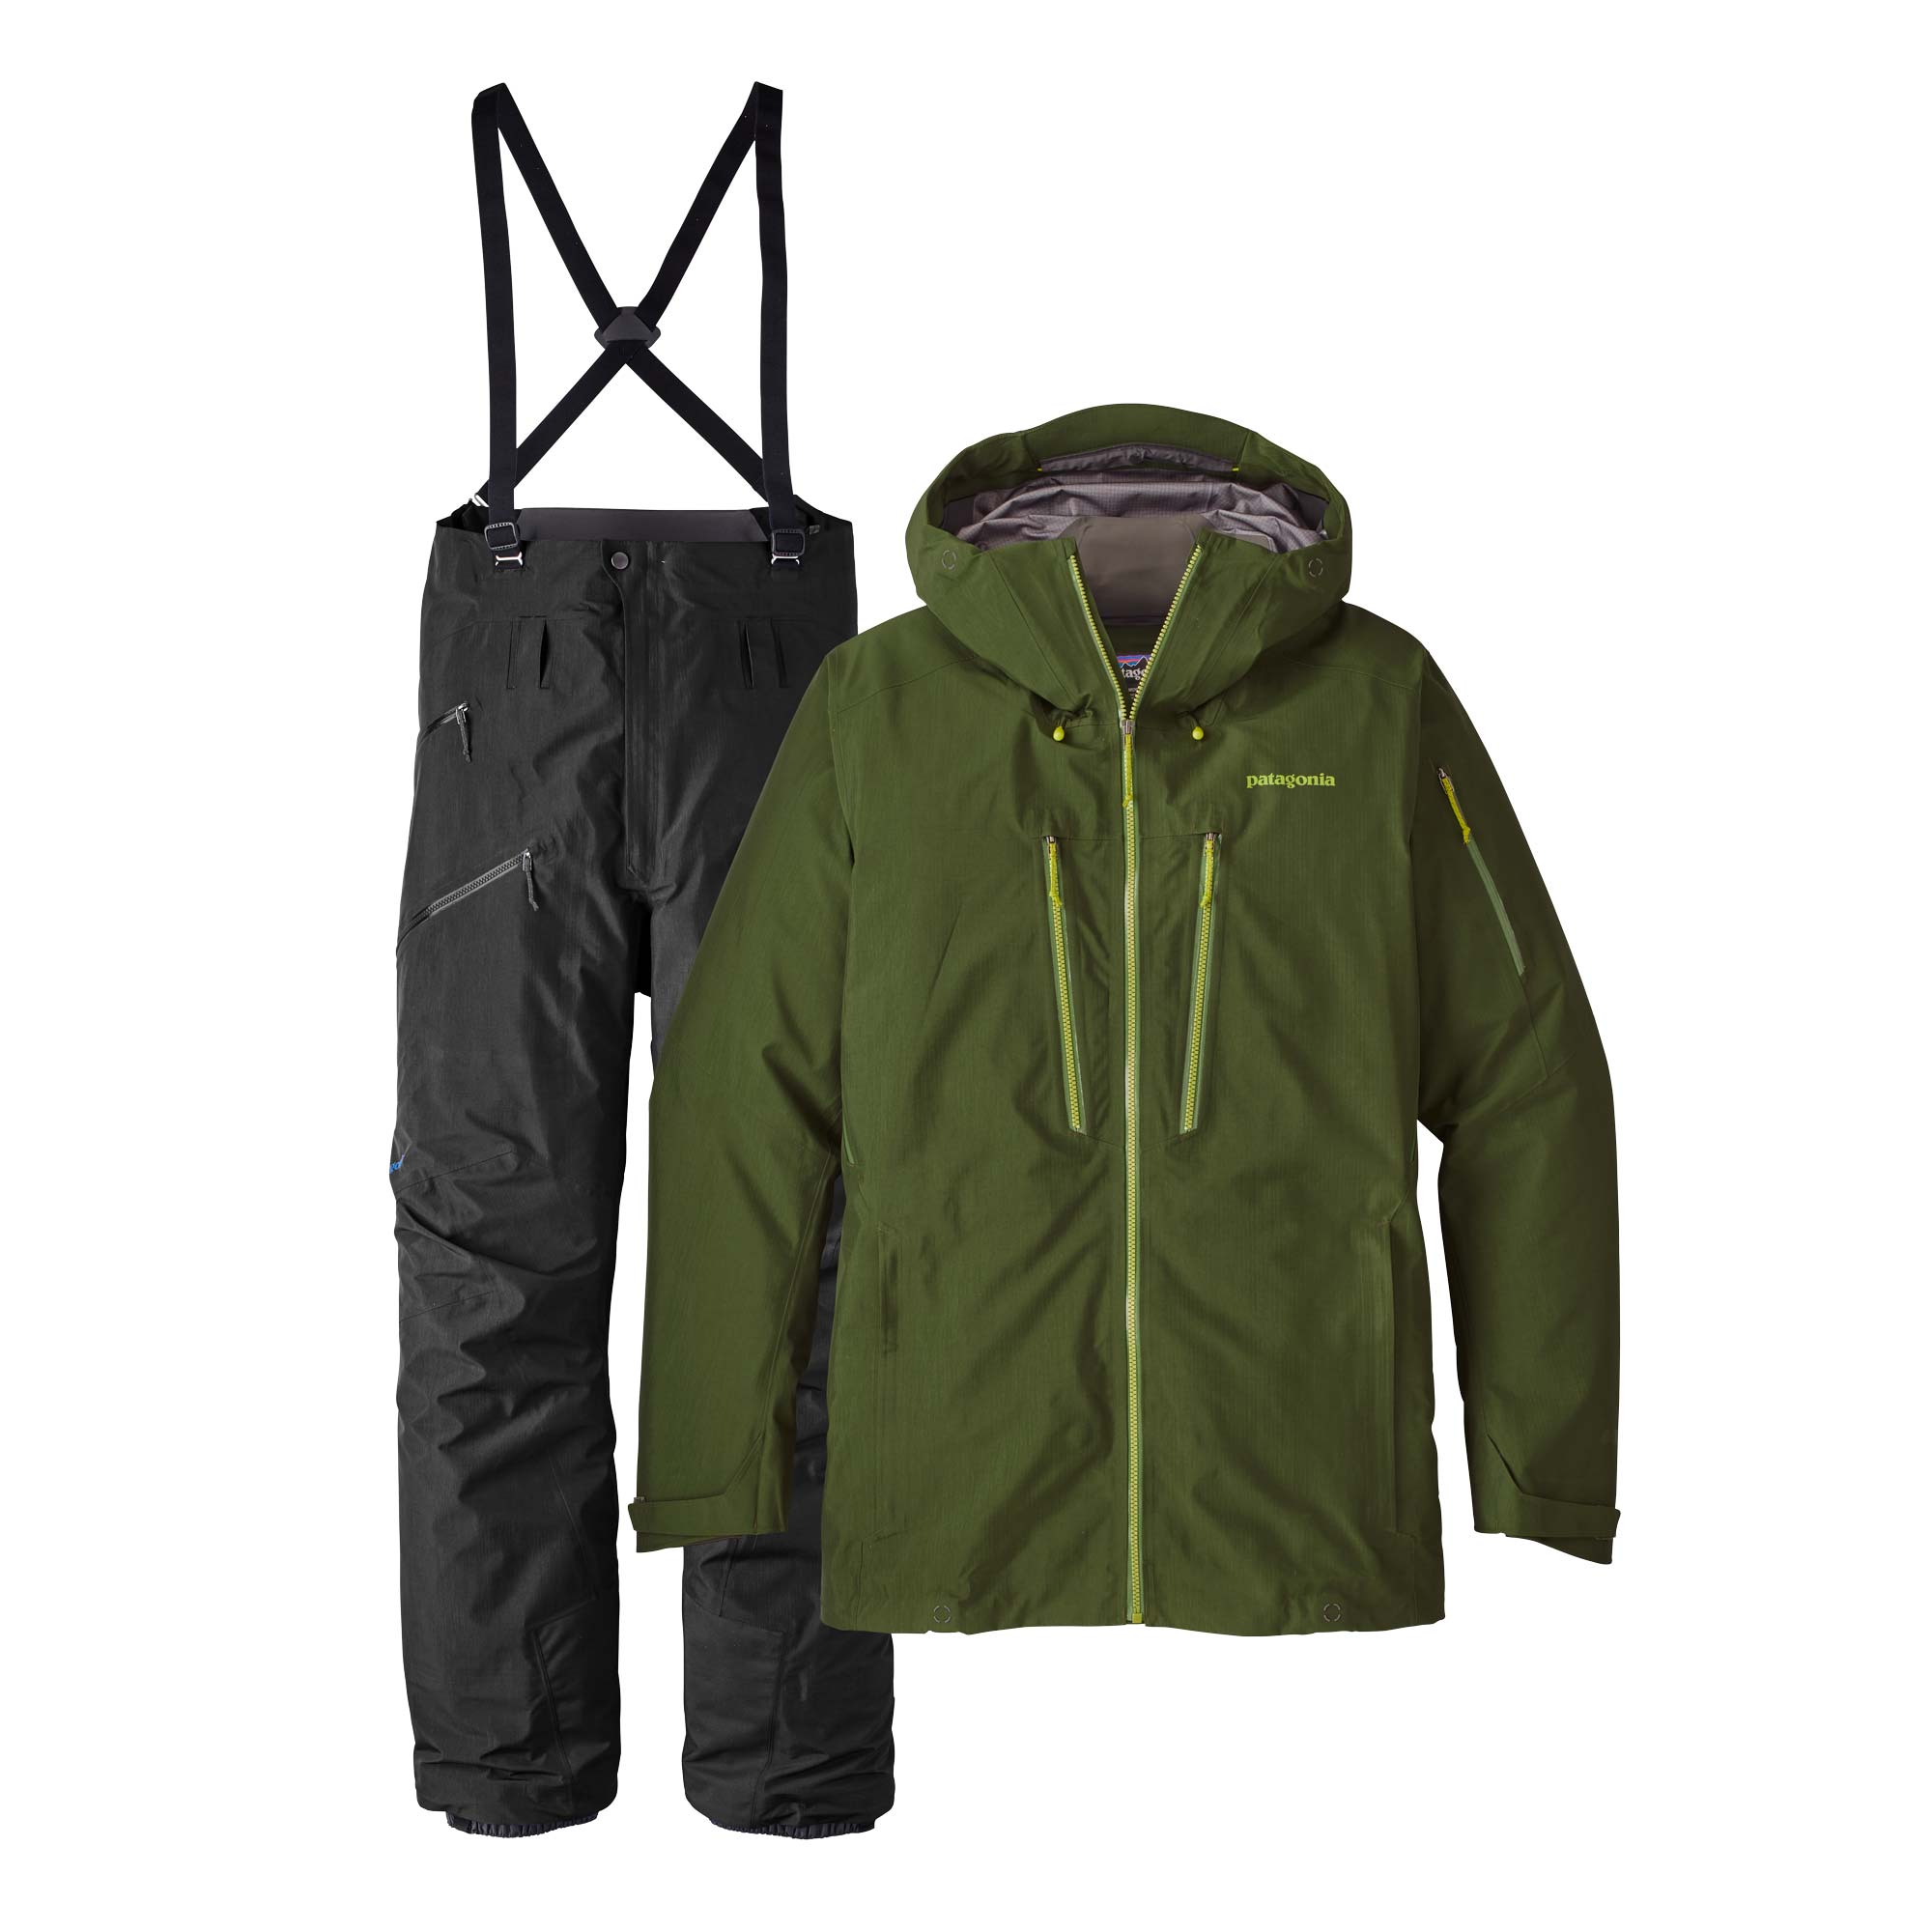 Men's PowSlayer Jacket and Bibs